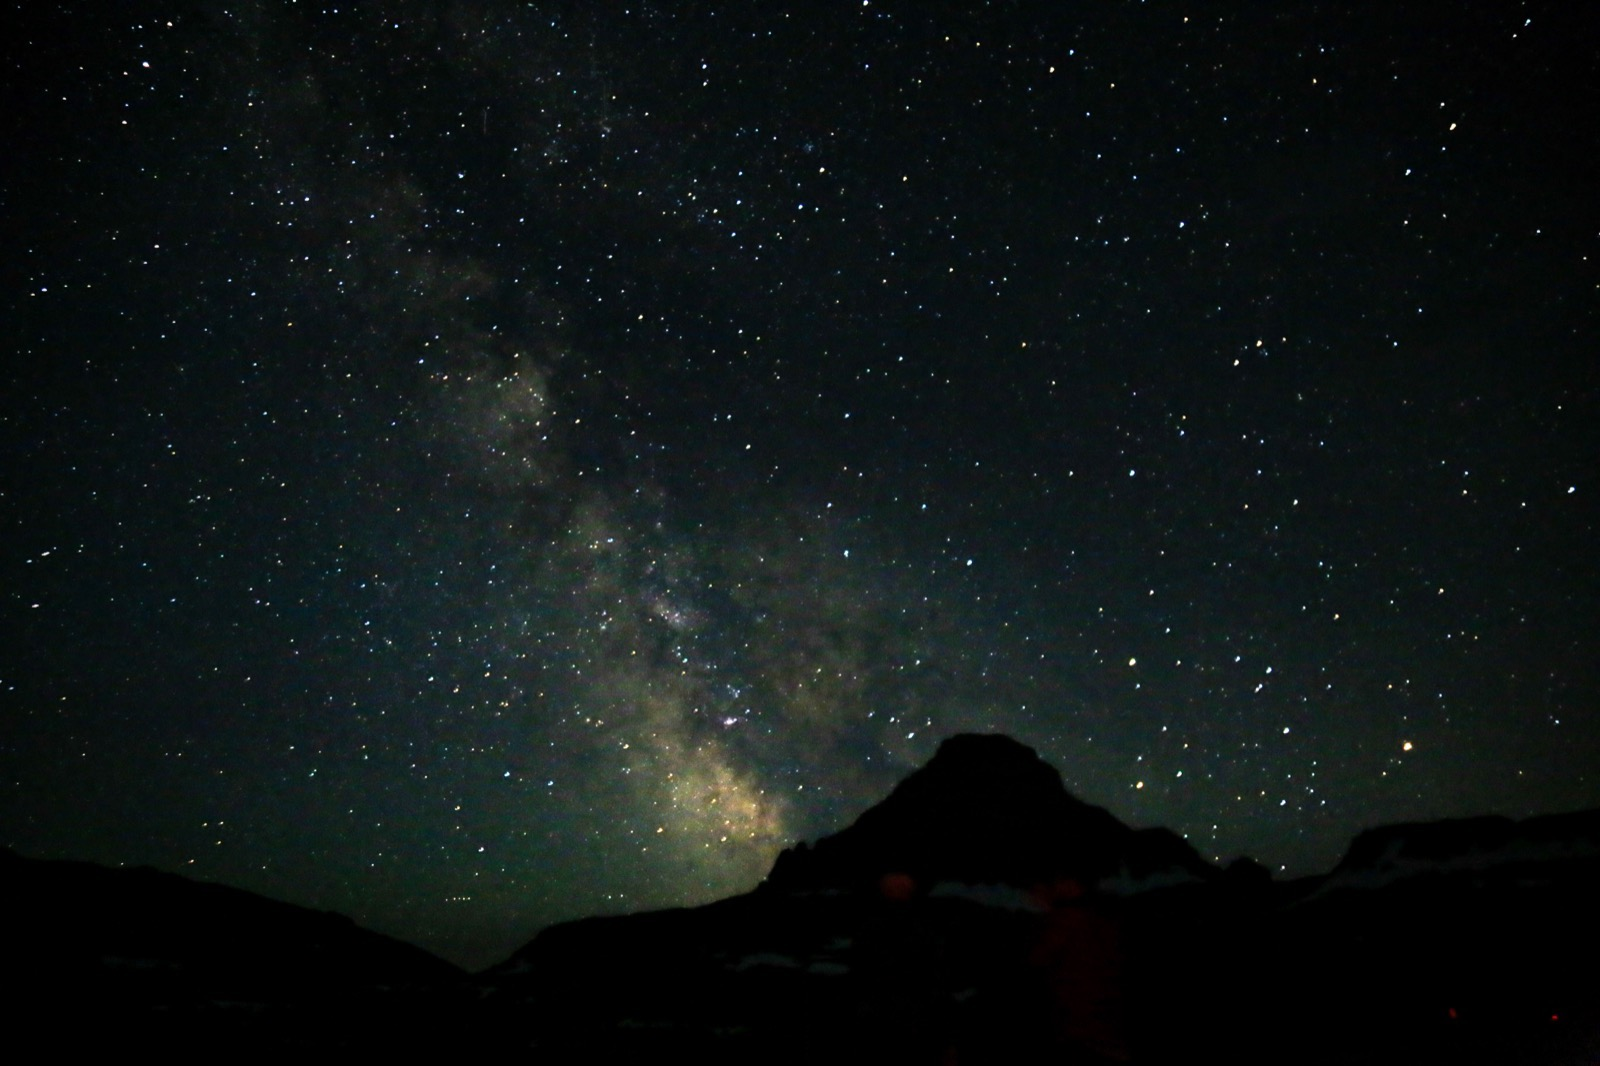 Stars and Milky Way in dark night sky over Glacier National Park.